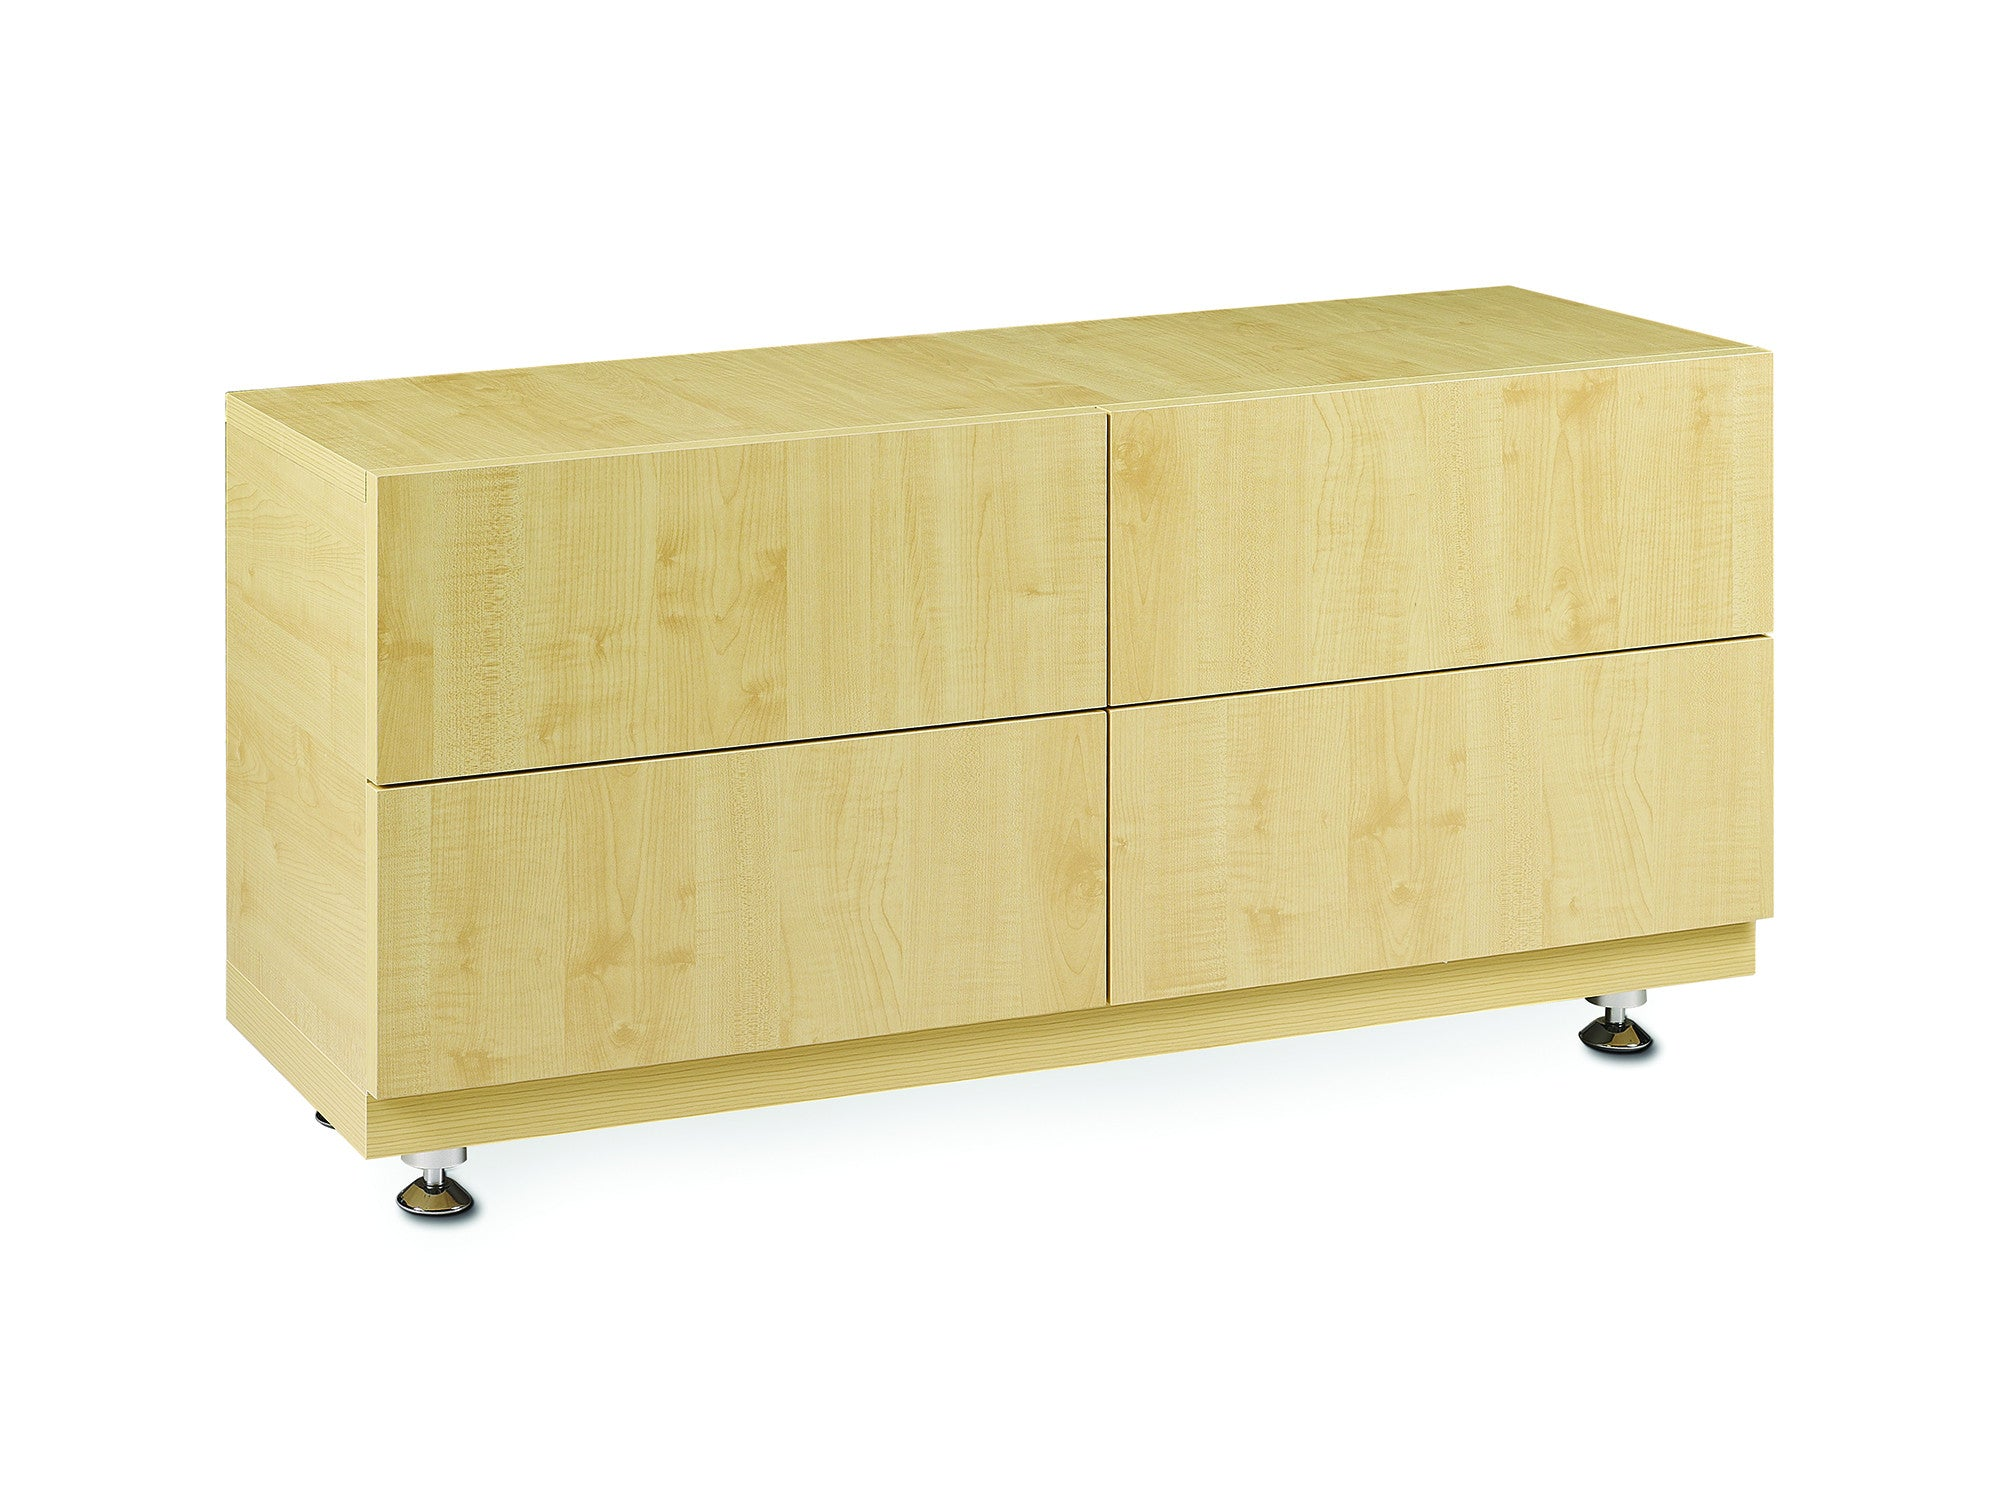 Busan 4 drawers chest natural wood meubles newell for Meuble brossard